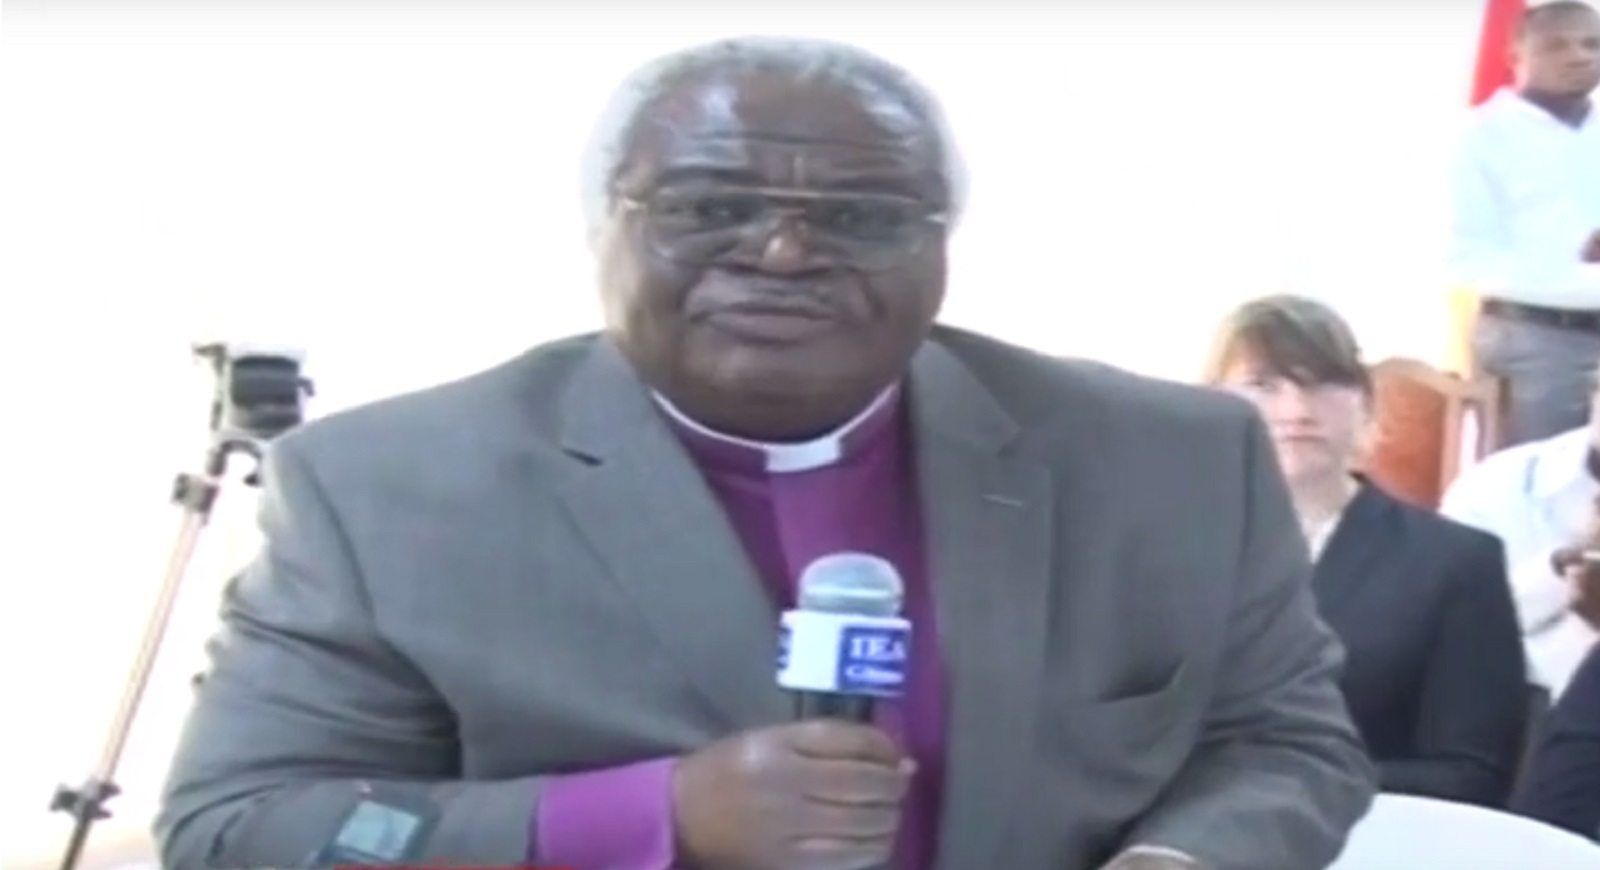 Church leader claims gay people are Satanists